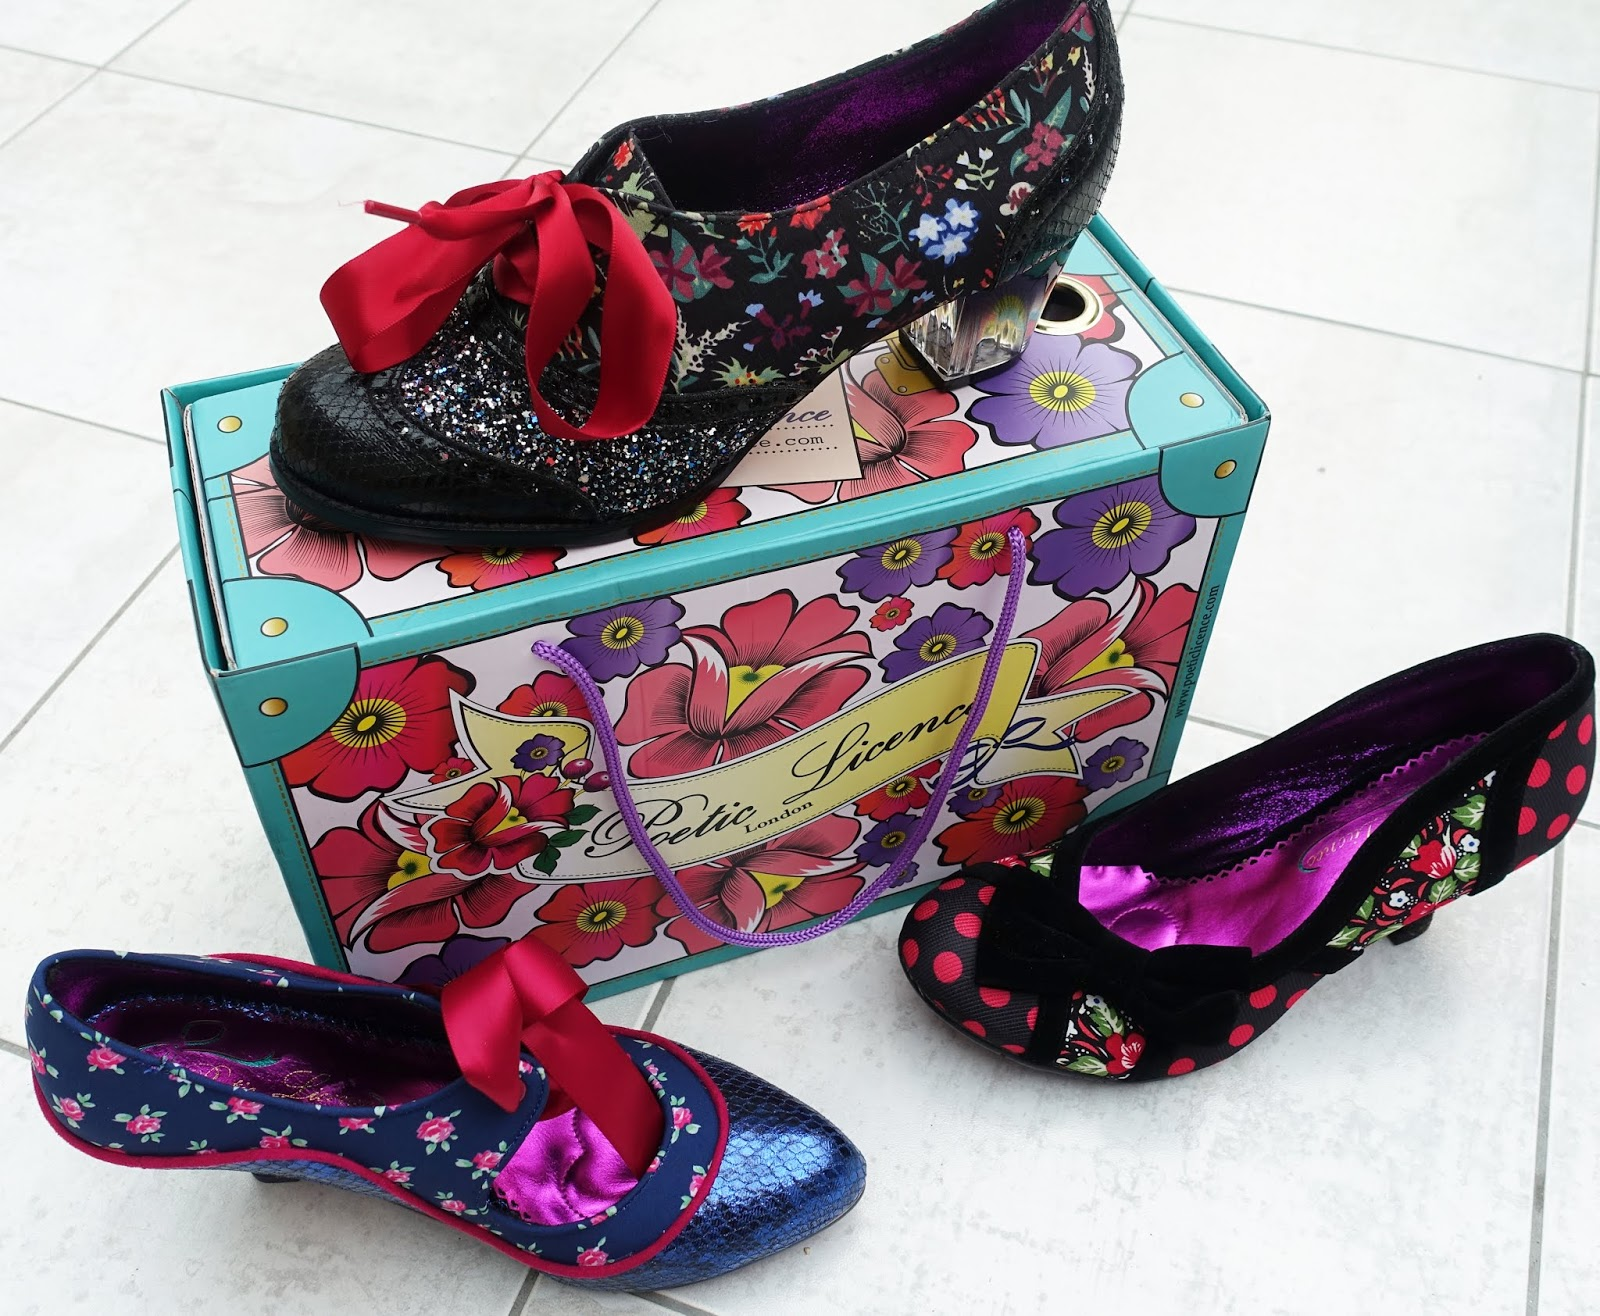 Colourful embellished and beribboned shoes by Poetic Licence from the collection of blogger Gail Hanlon from Is This Mutton